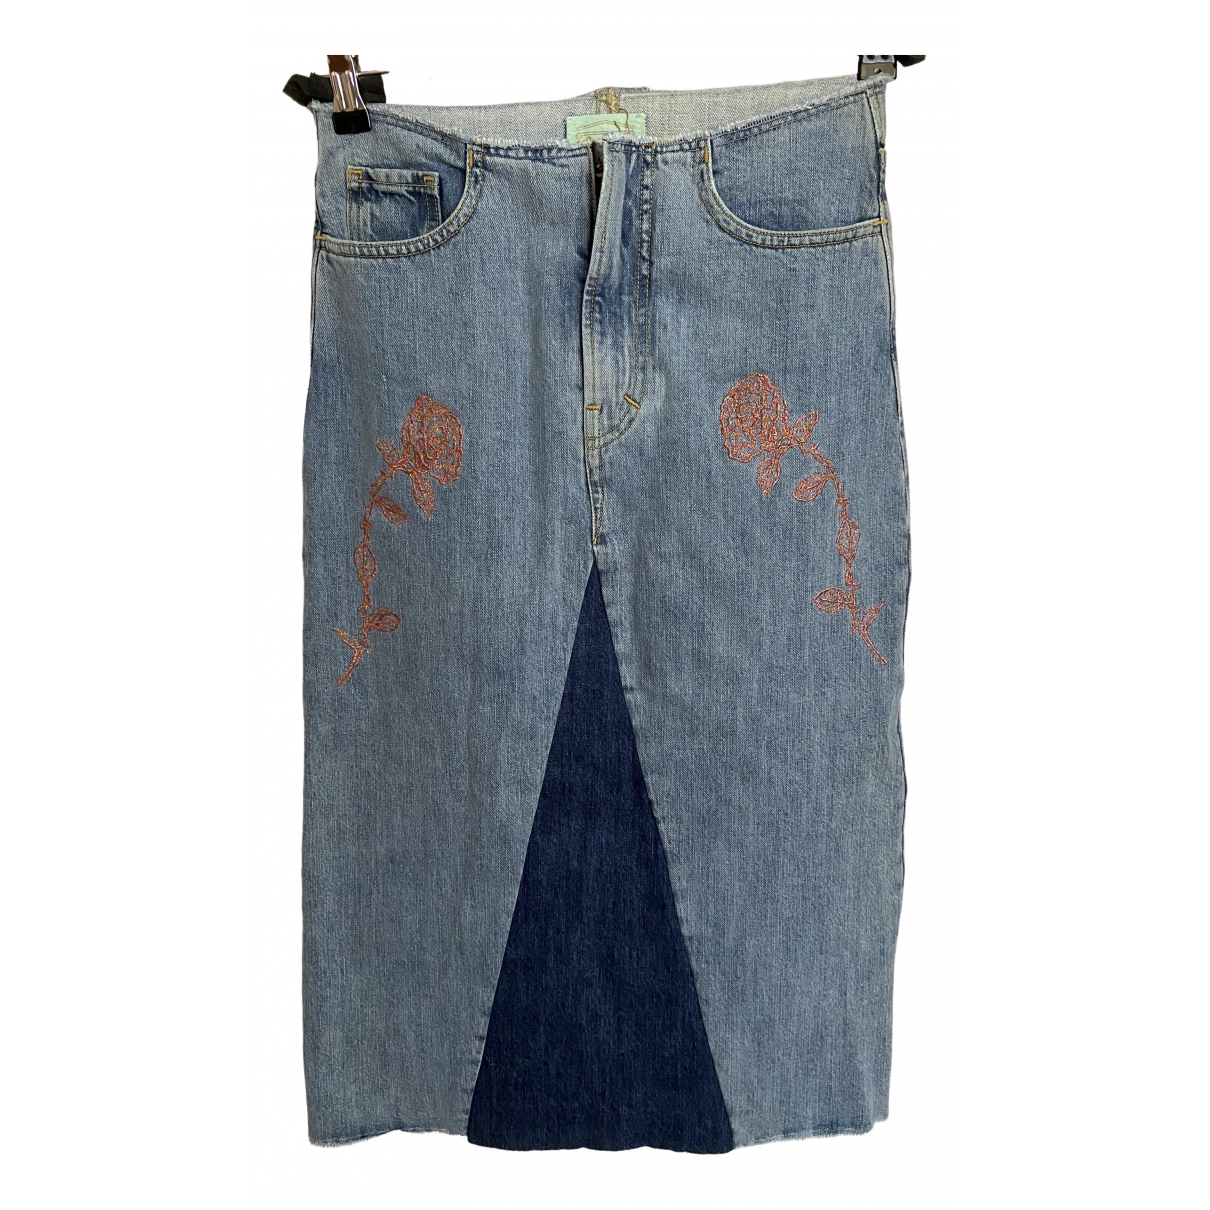 Aries \N Blue Denim - Jeans skirt for Women S International